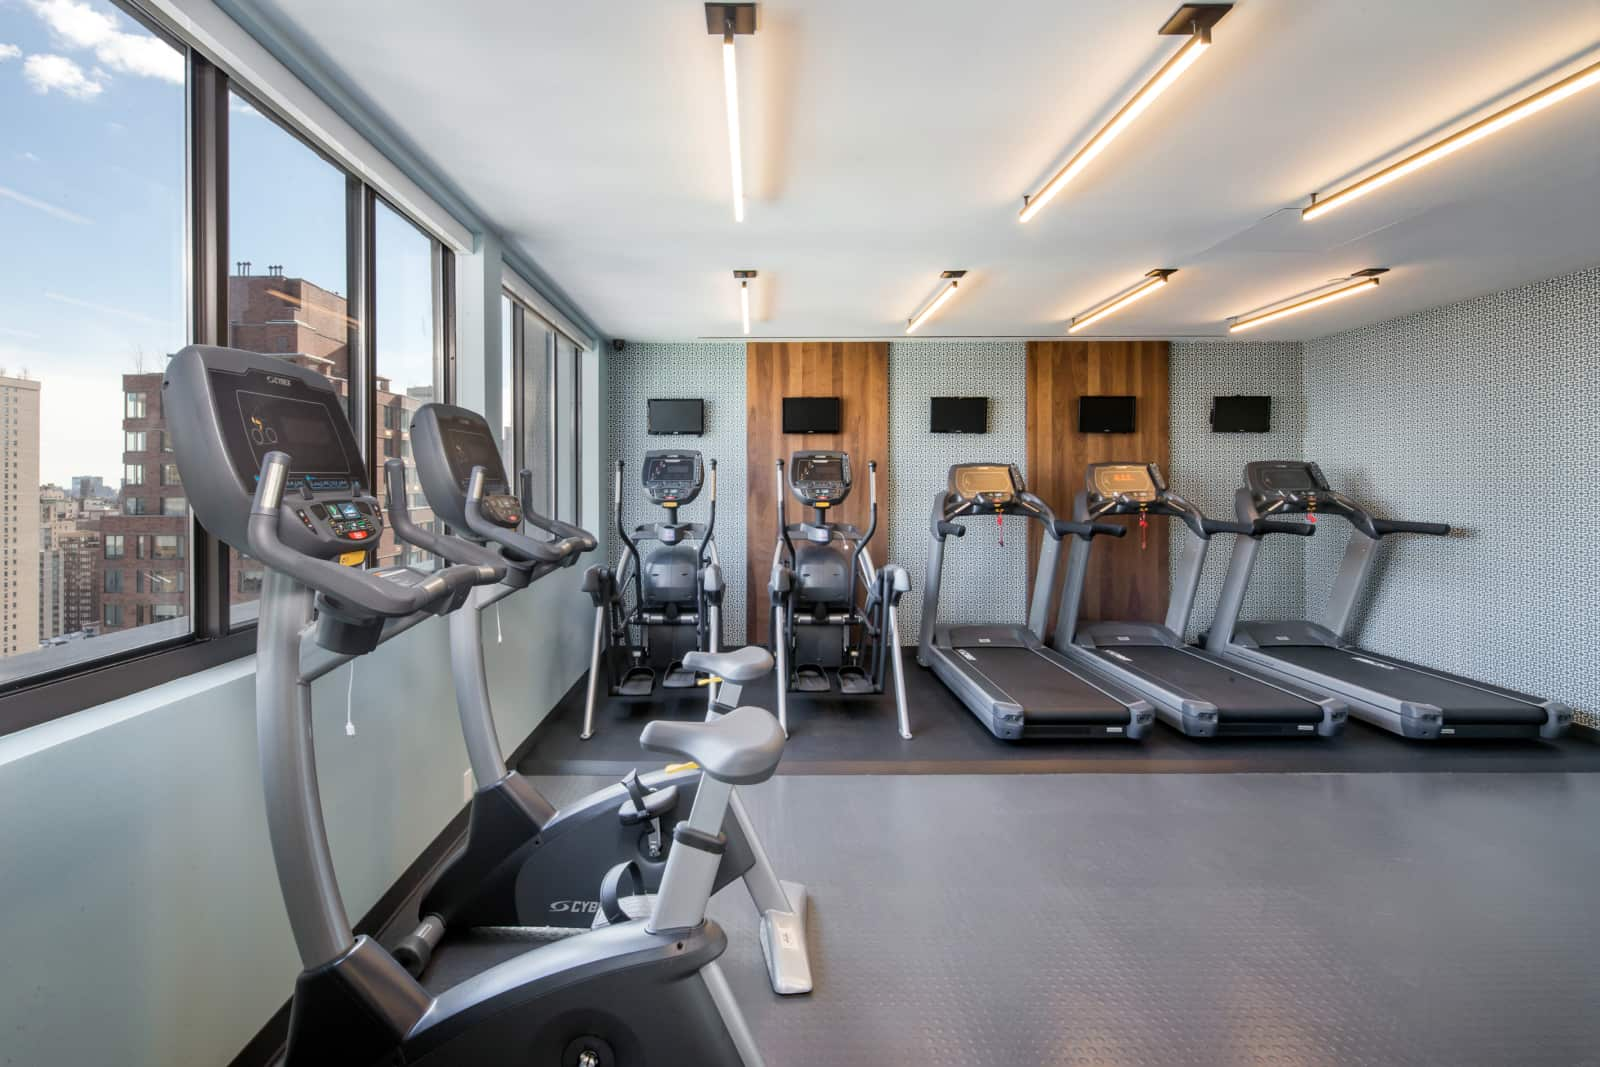 Interior of fitness center with various exercise machines.